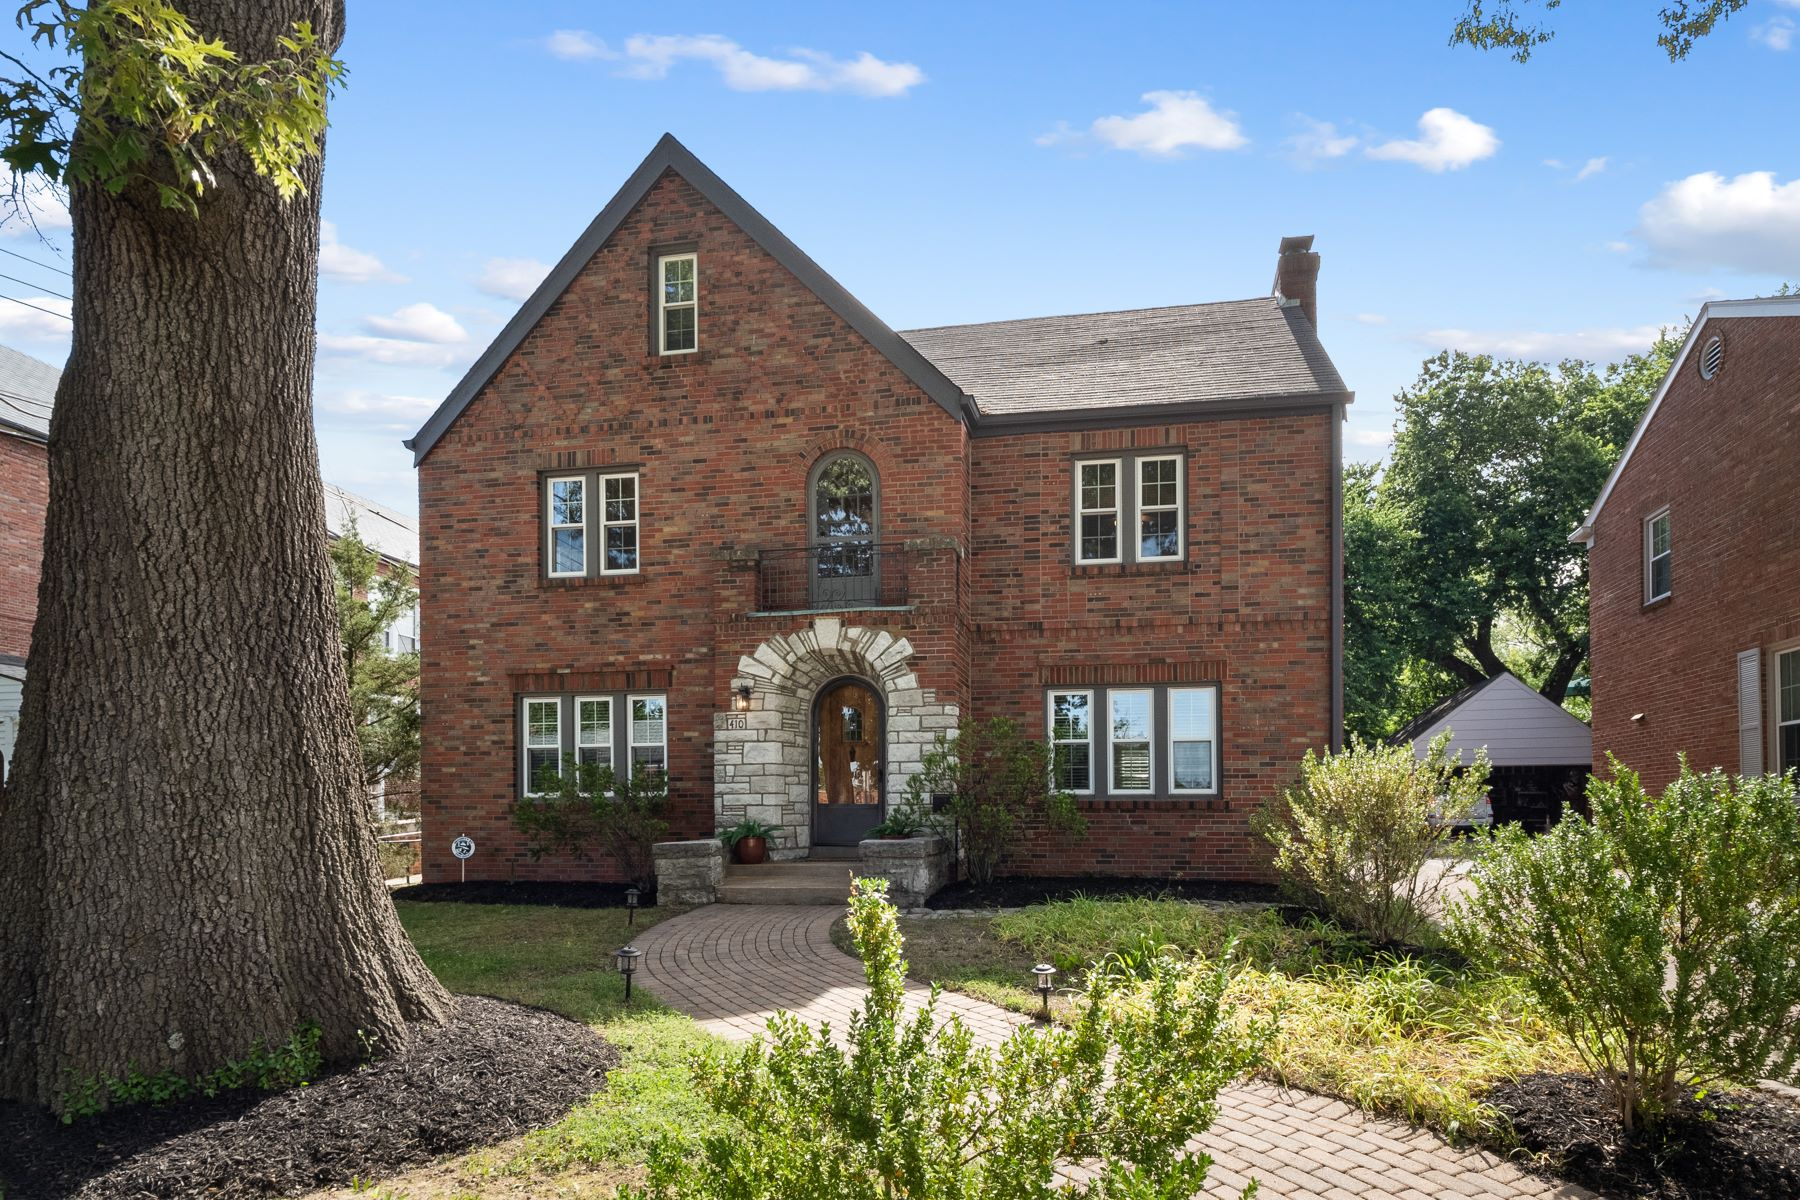 Single Family Homes for Sale at Classic Clayton Home 410 South Meramec Avenue Clayton, Missouri 63105 United States